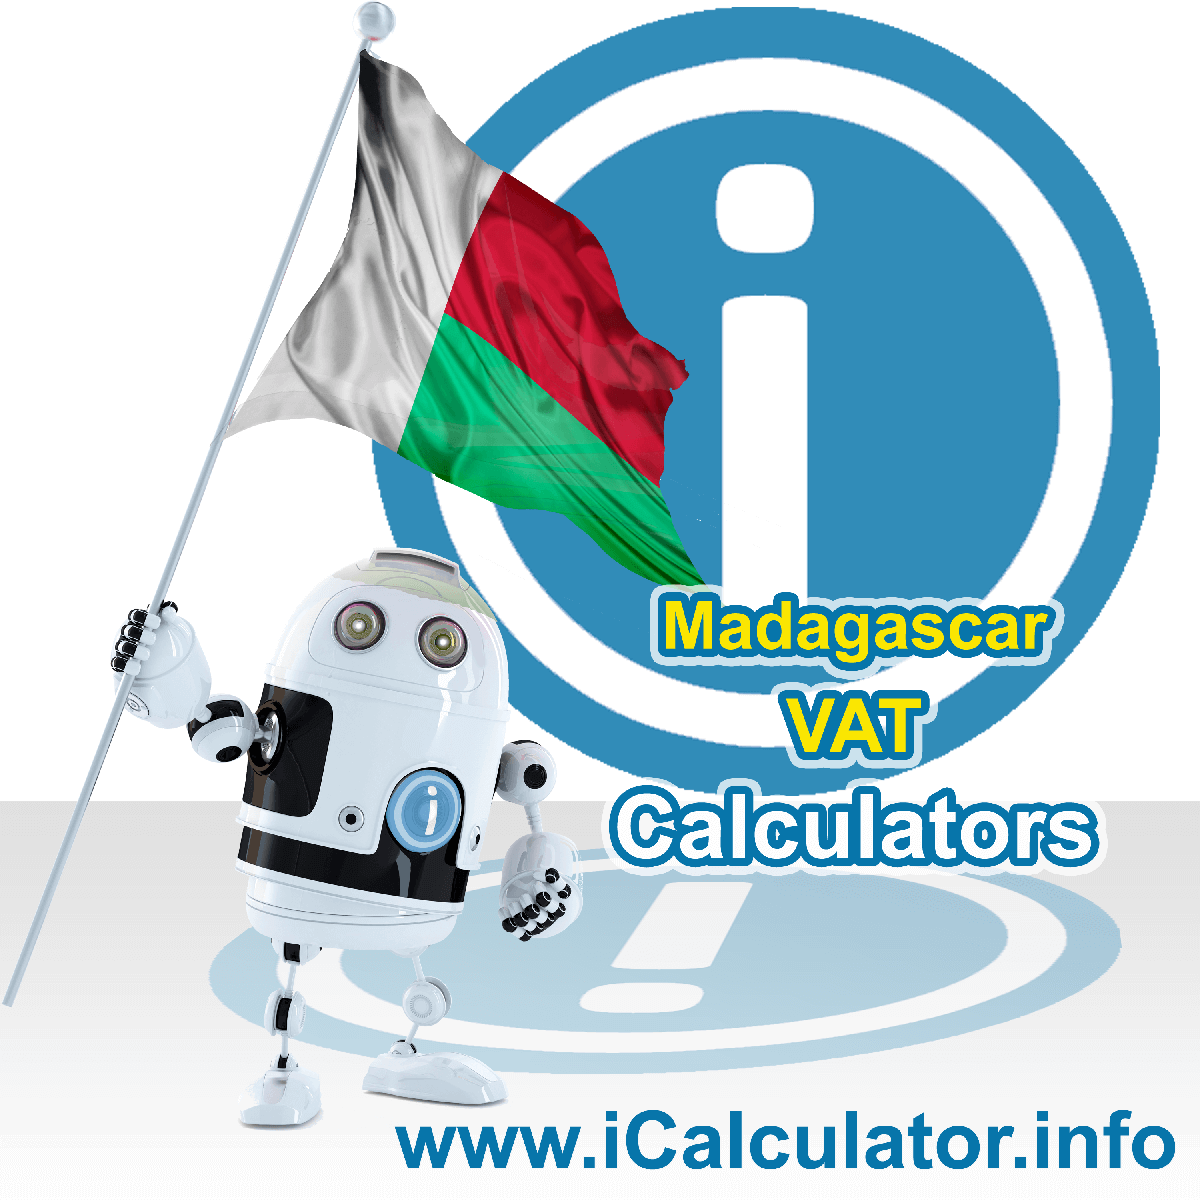 Madagascar VAT Calculator. This image shows the Madagascar flag and information relating to the VAT formula used for calculating Value Added Tax in Madagascar using the Madagascar VAT Calculator in 2021